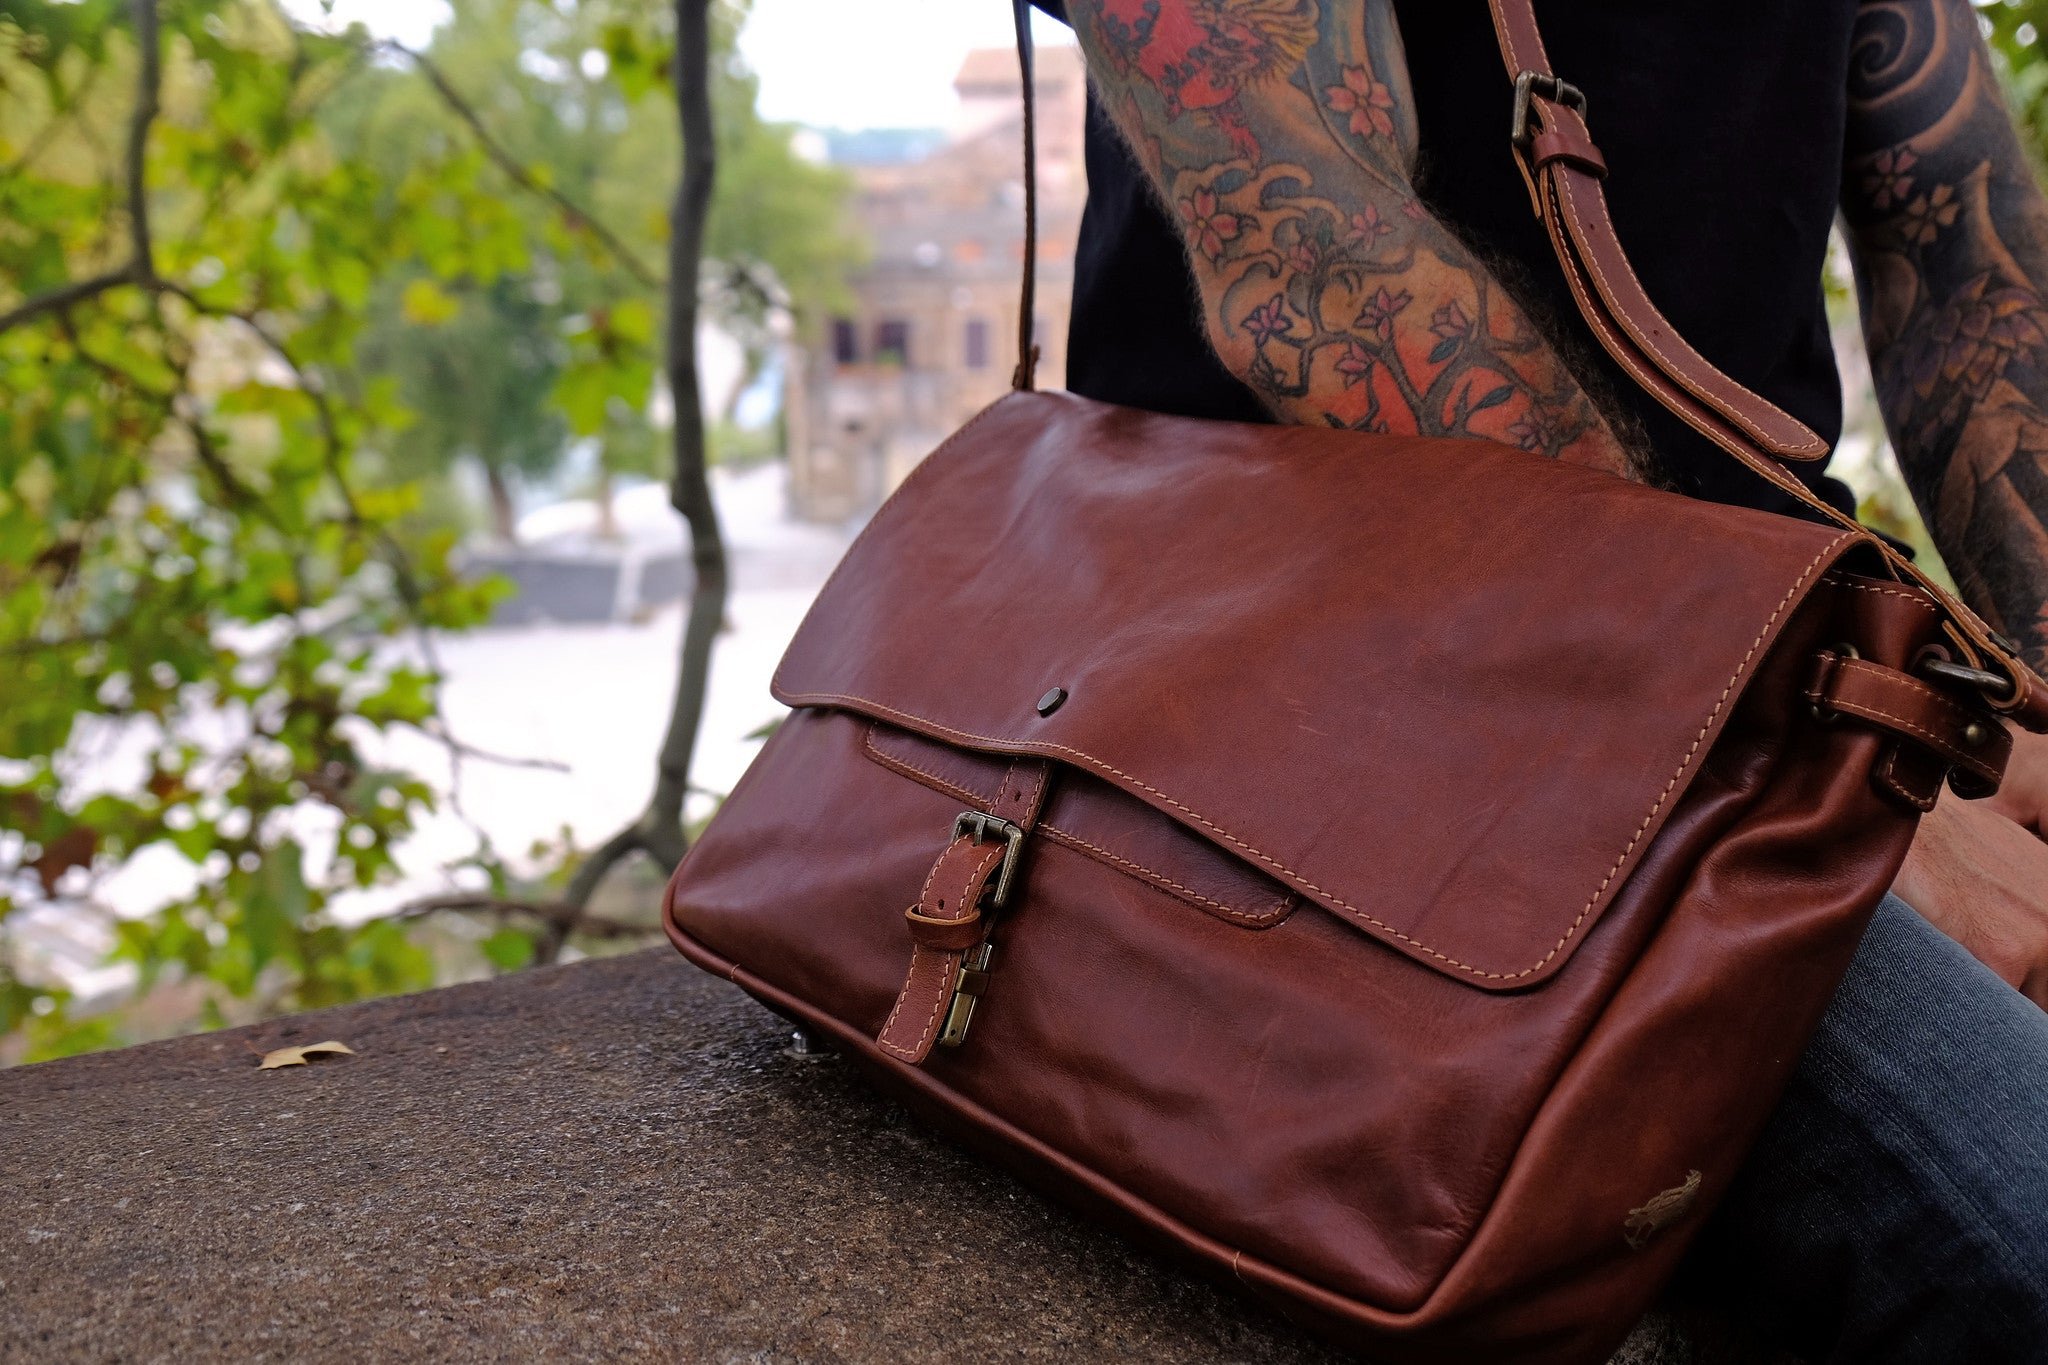 Handmade leather messenger bags, what's the use?